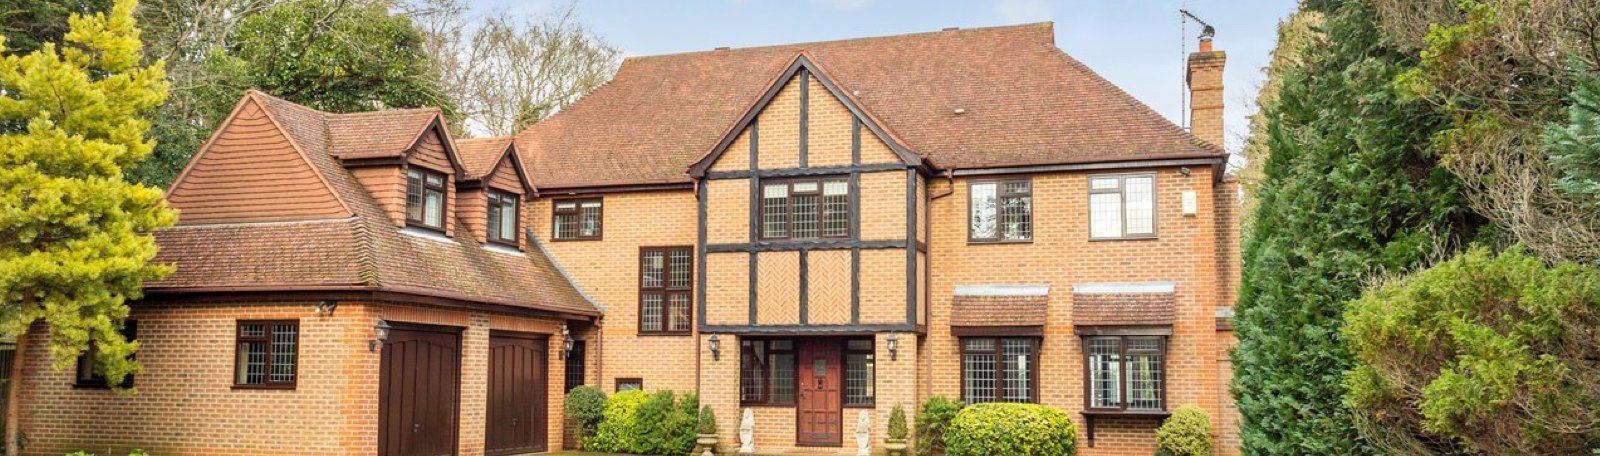 Property to rent in The Barton, Cobham, KT11